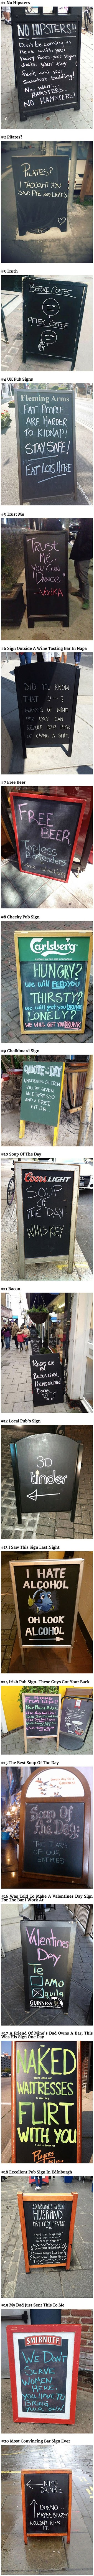 Funny restaurant sign collection picture